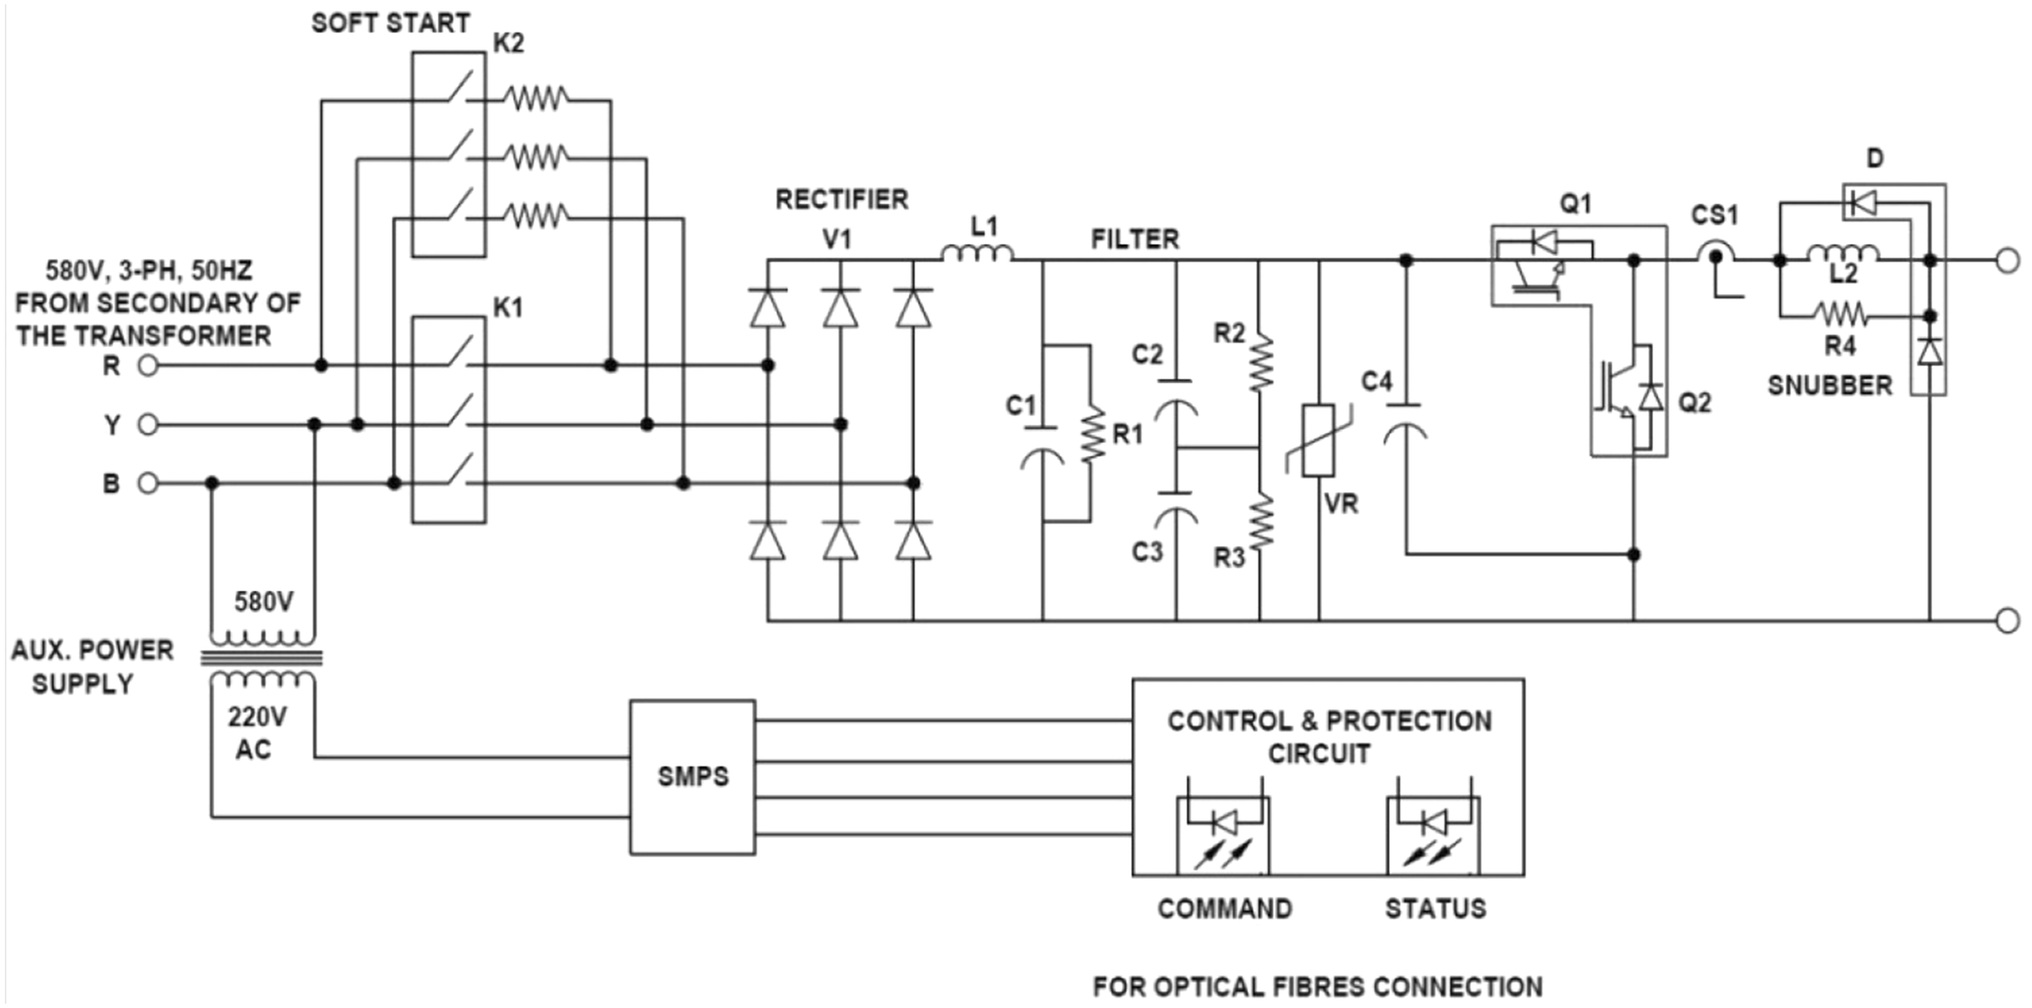 Design And Performance Analysis Of A Crowbar Less High Voltage Power Coil Driver Circuit Switching Supply Schematic Ignition Switch Open Image In New Window